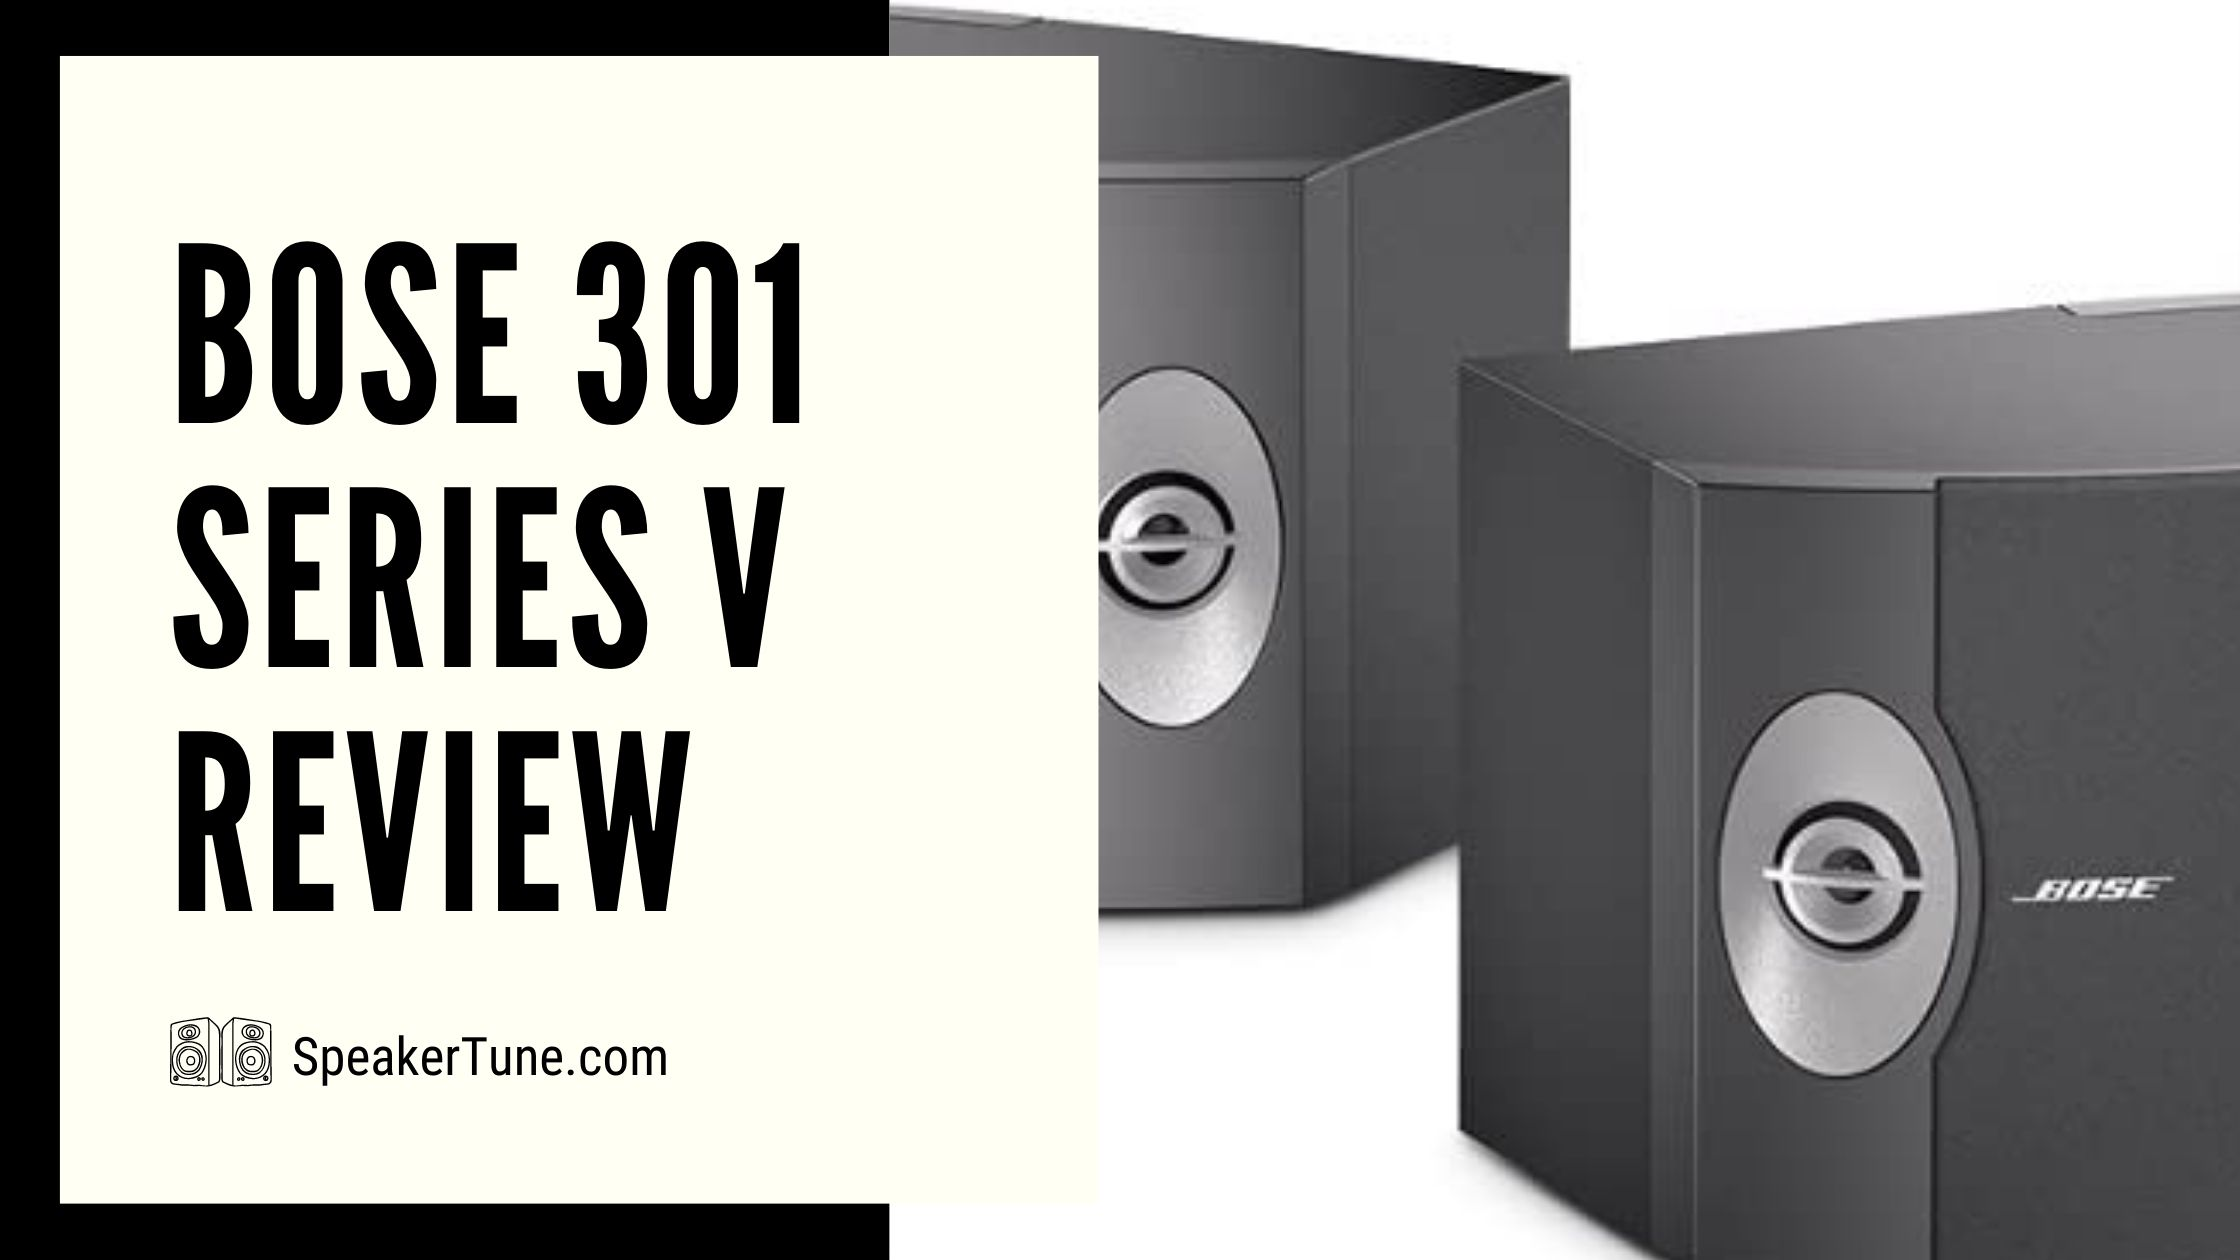 ST-Bose-301-Series-V-review